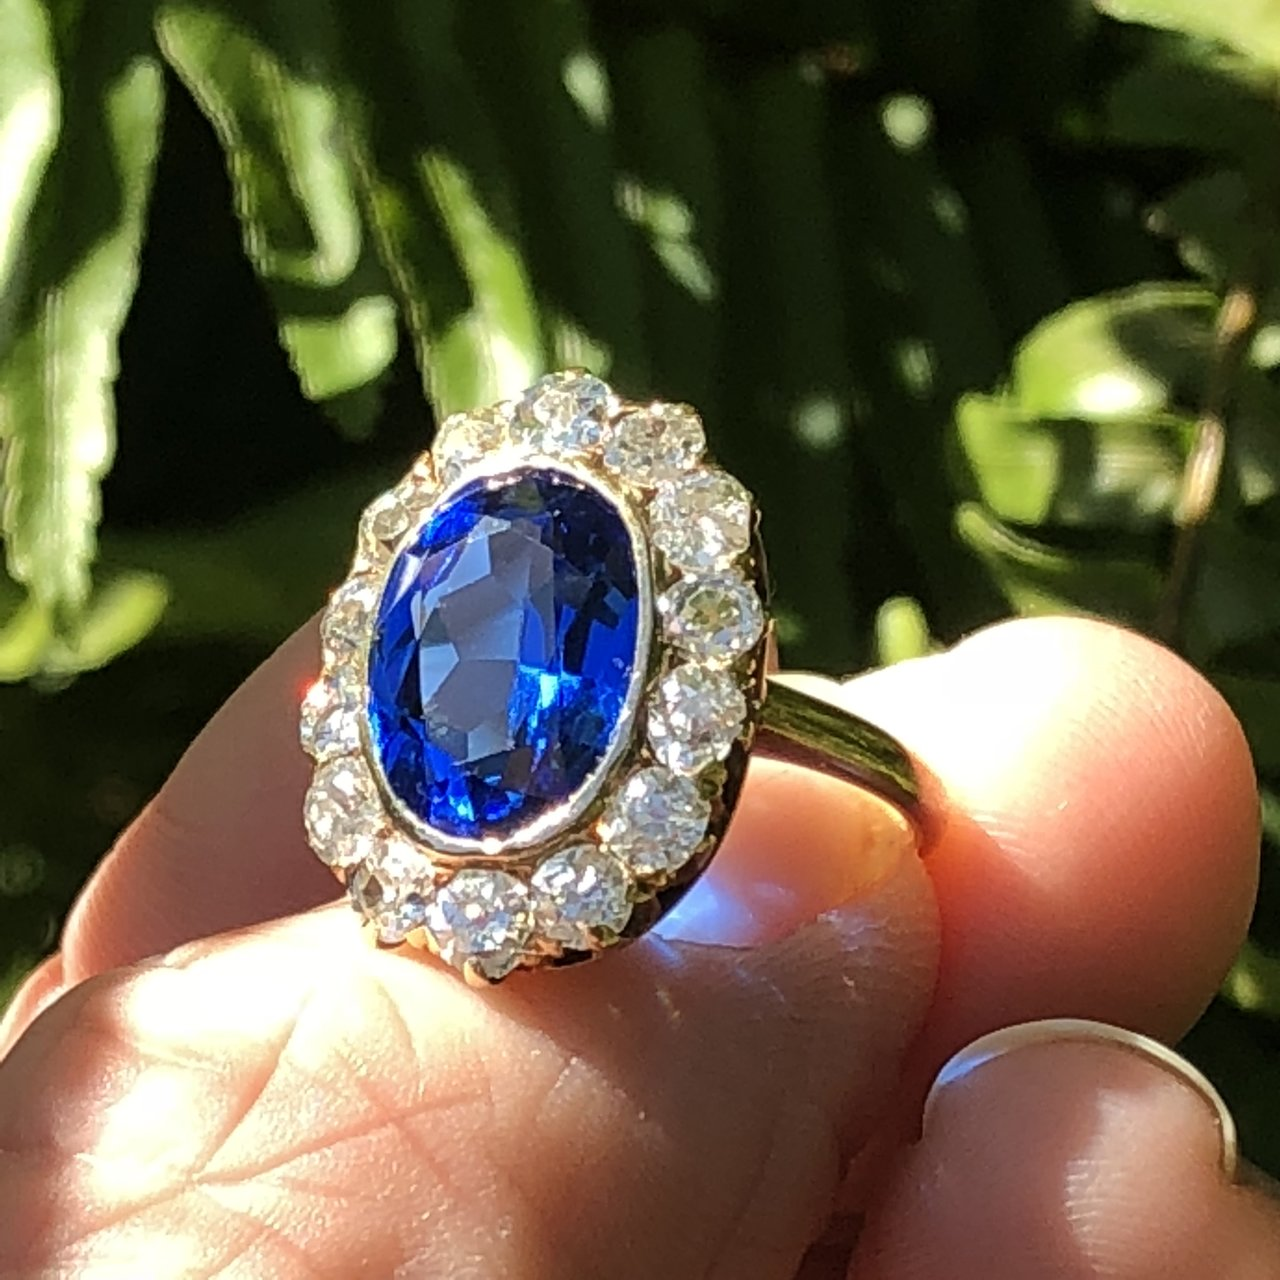 Awesome Antique/ Art Deco Ring!